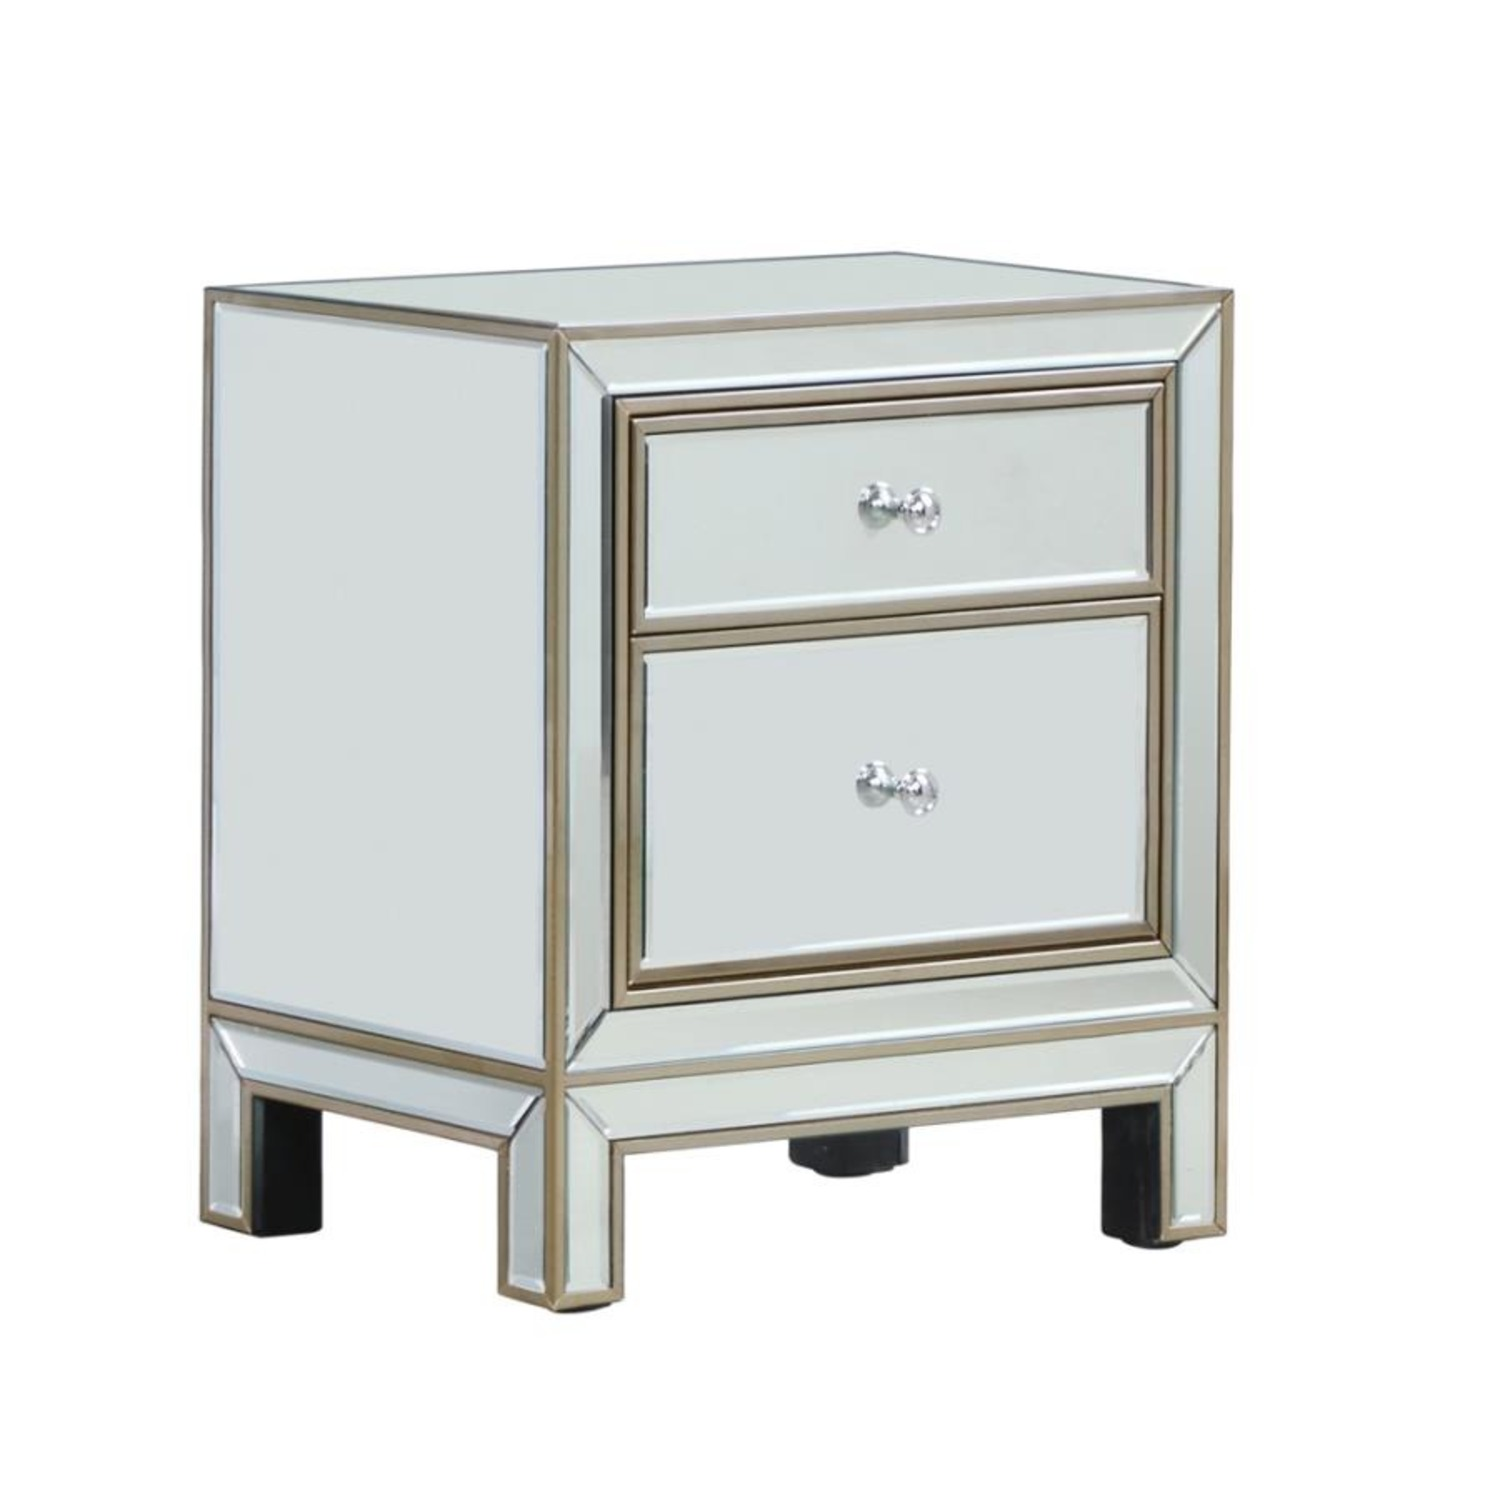 End Table In Silver & Champagne Finish - image-1